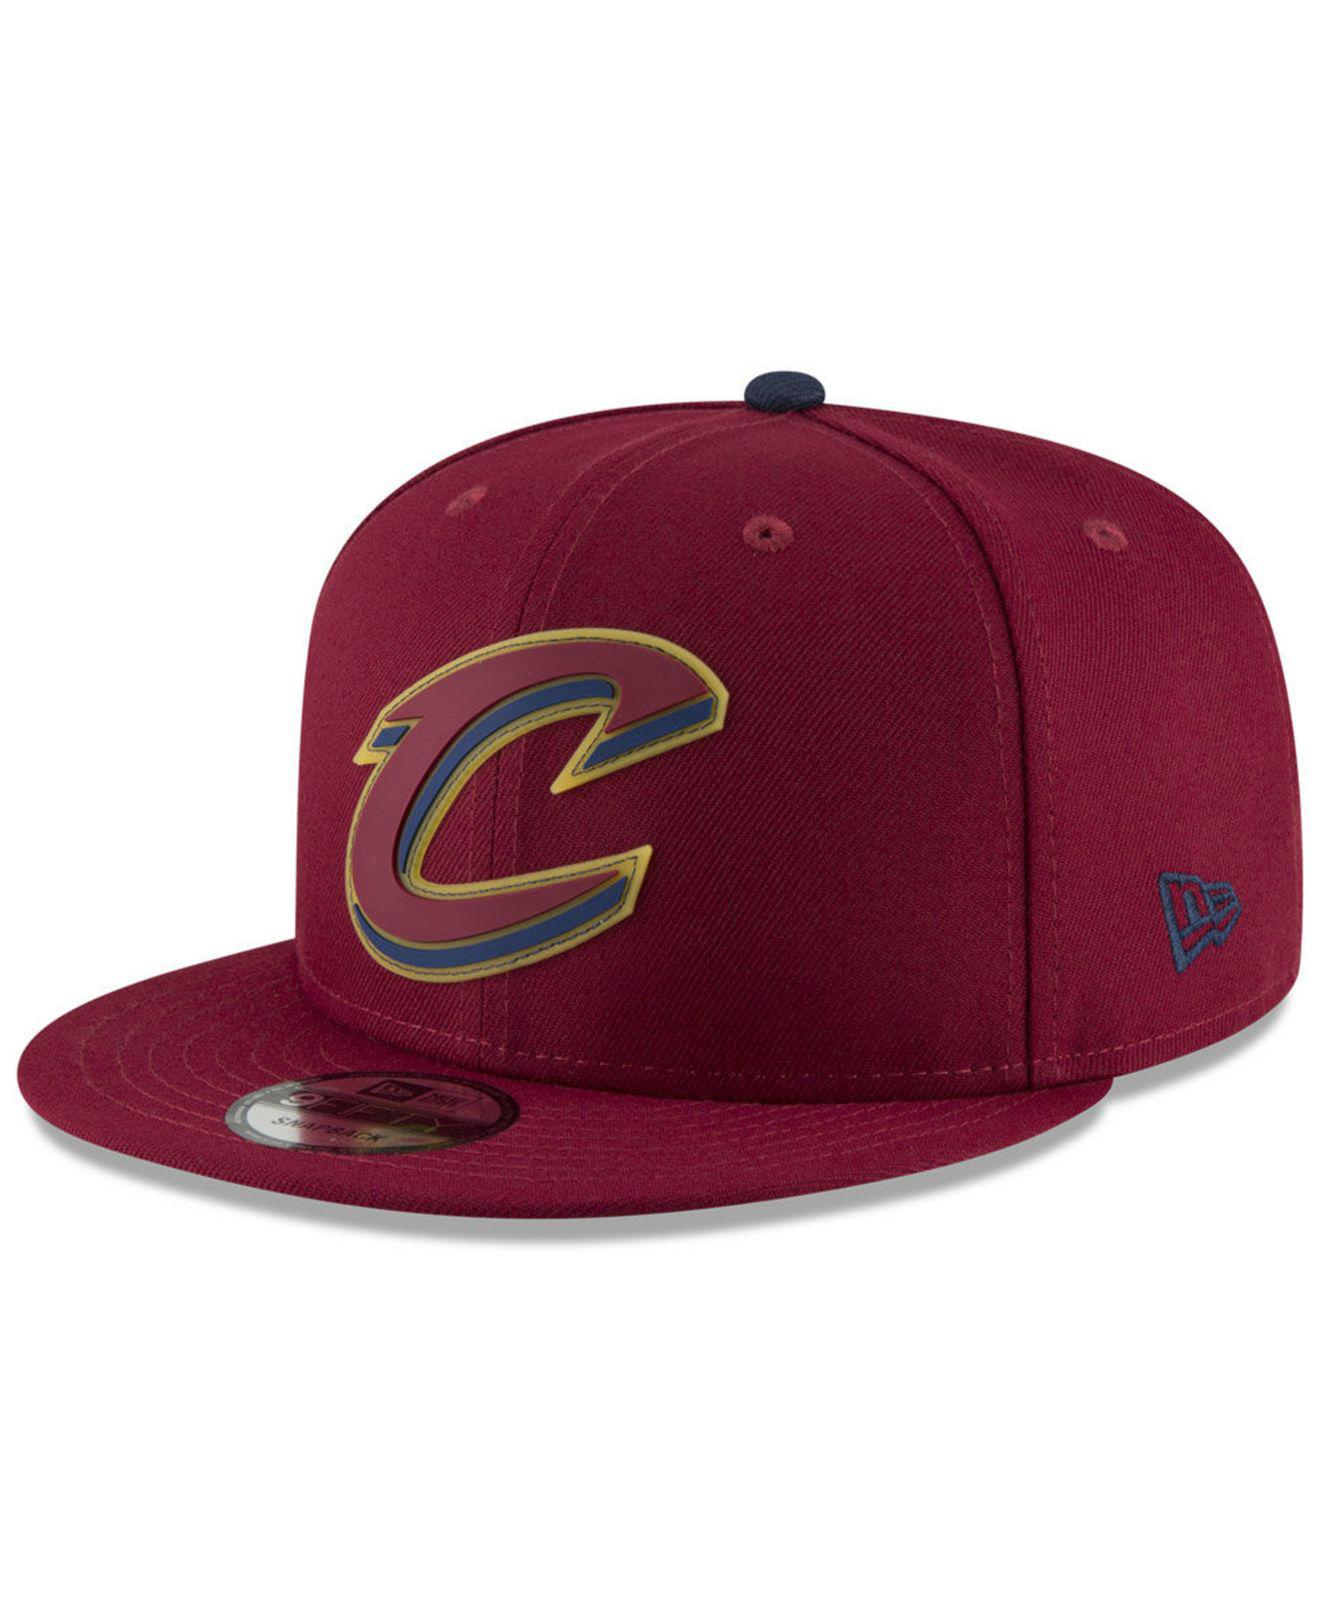 16c3750c323 Lyst - Ktz Cleveland Cavaliers Team Cleared 9fifty Snapback Cap for Men